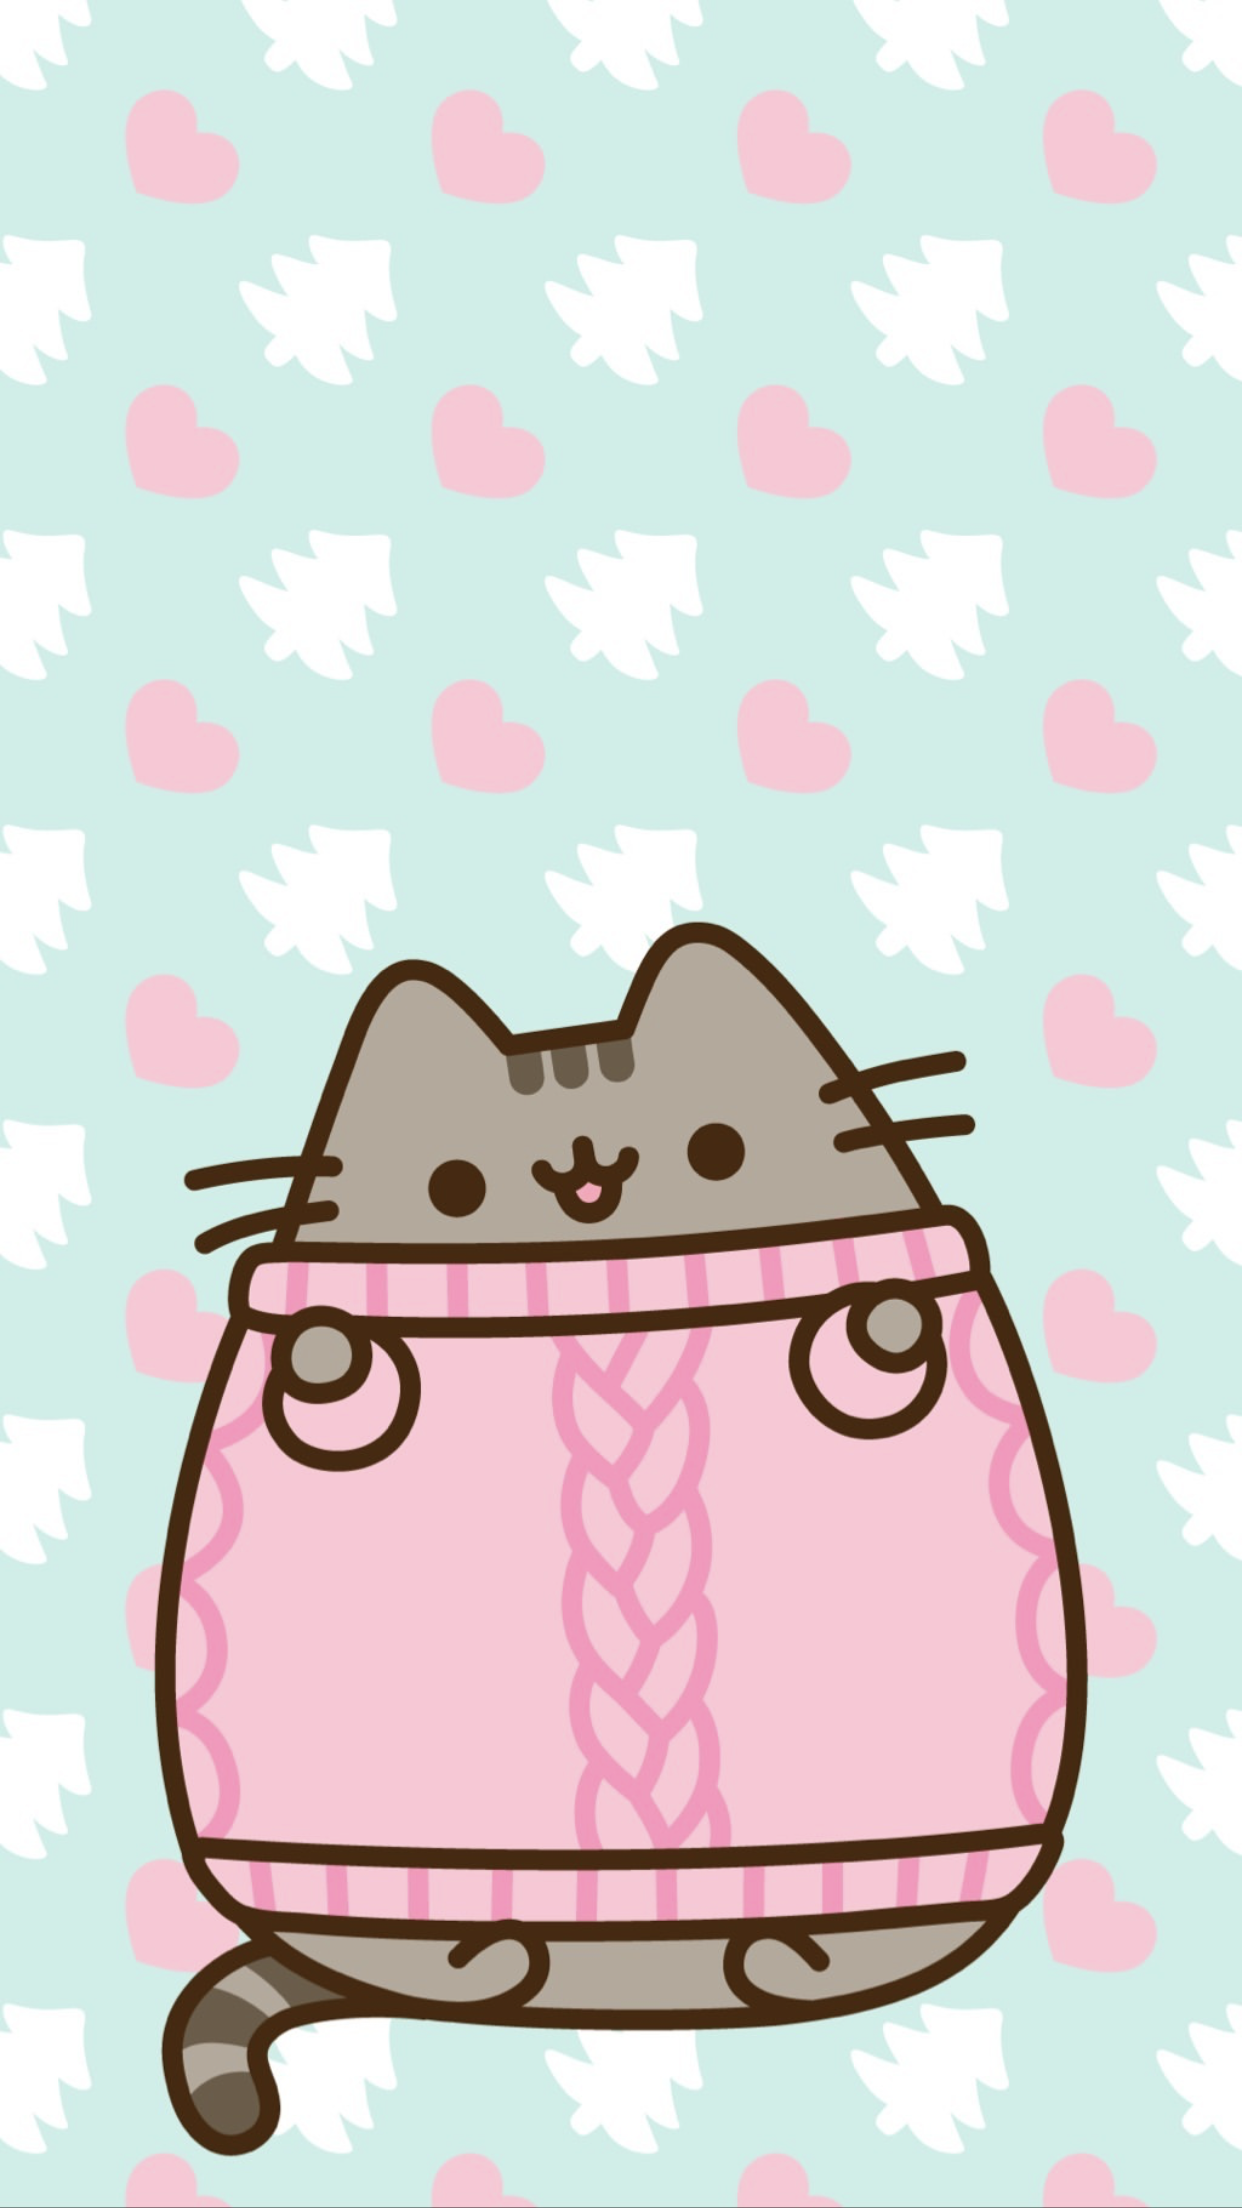 Pusheen The Cat Iphone Wallpaper 649151733767045136 Pusheen Cute Pusheen Christmas Cute Wallpapers